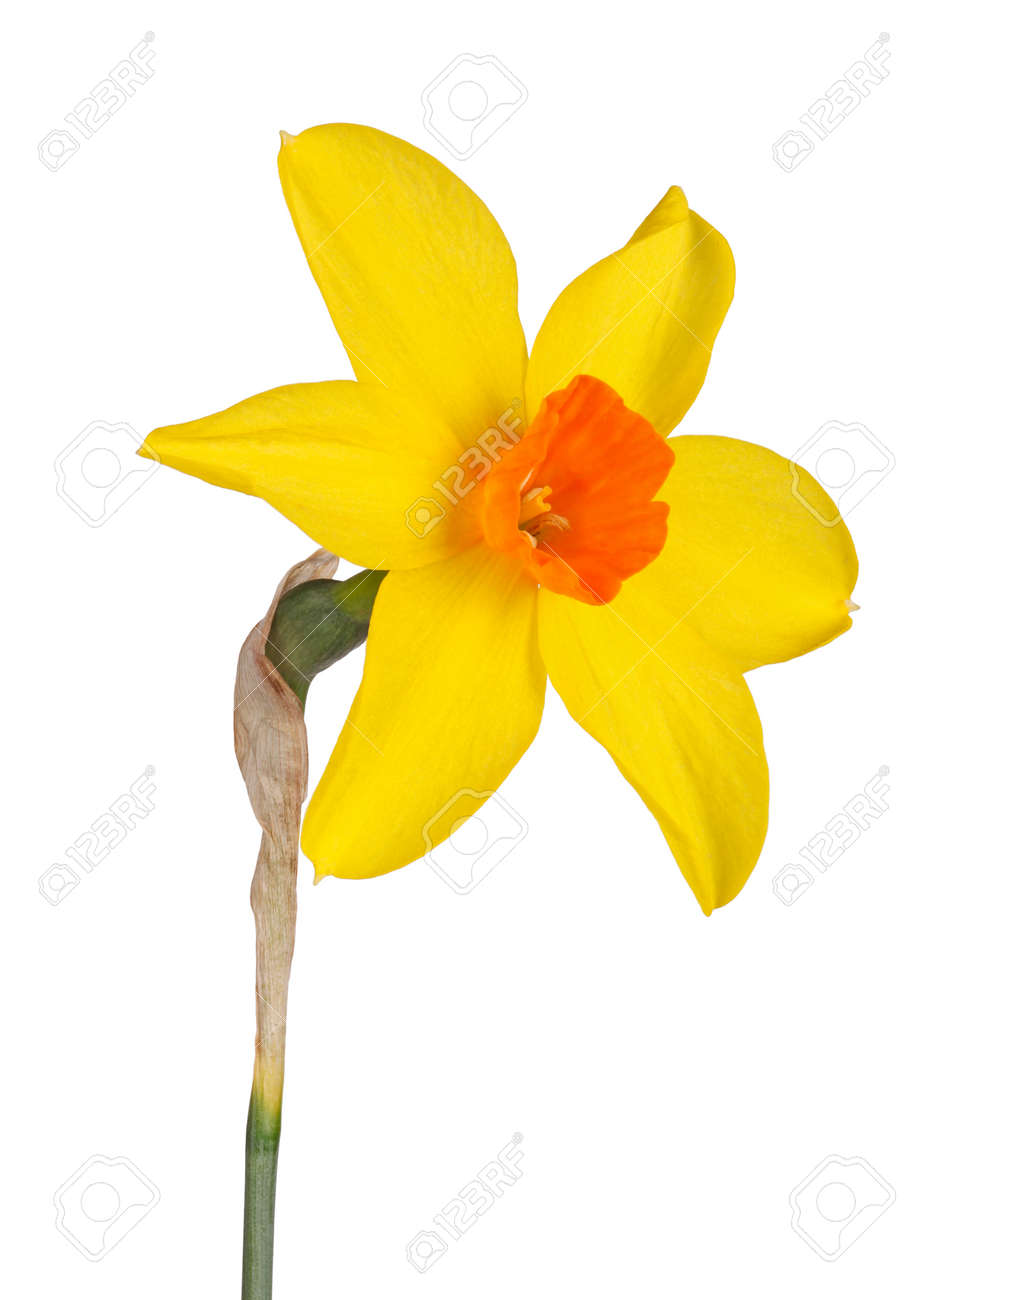 Single flower and stem of the yellow and red small cup daffodil single flower and stem of the yellow and red small cup daffodil cultivar starbrook mightylinksfo